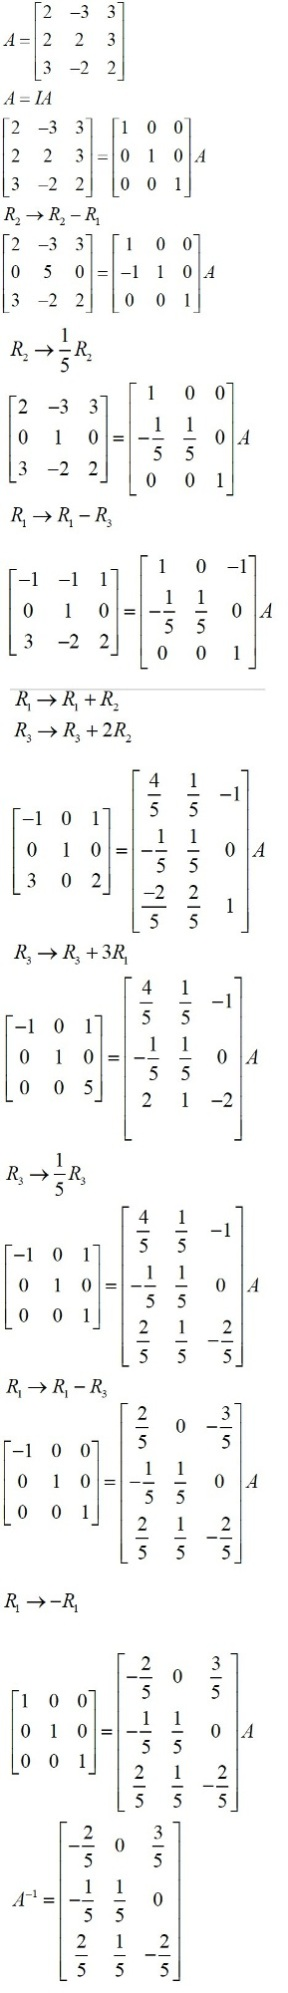 NCERT Solutions for Class 12 Maths: Chapter 3: Matrices (Exercise 3.4, Solution 15)